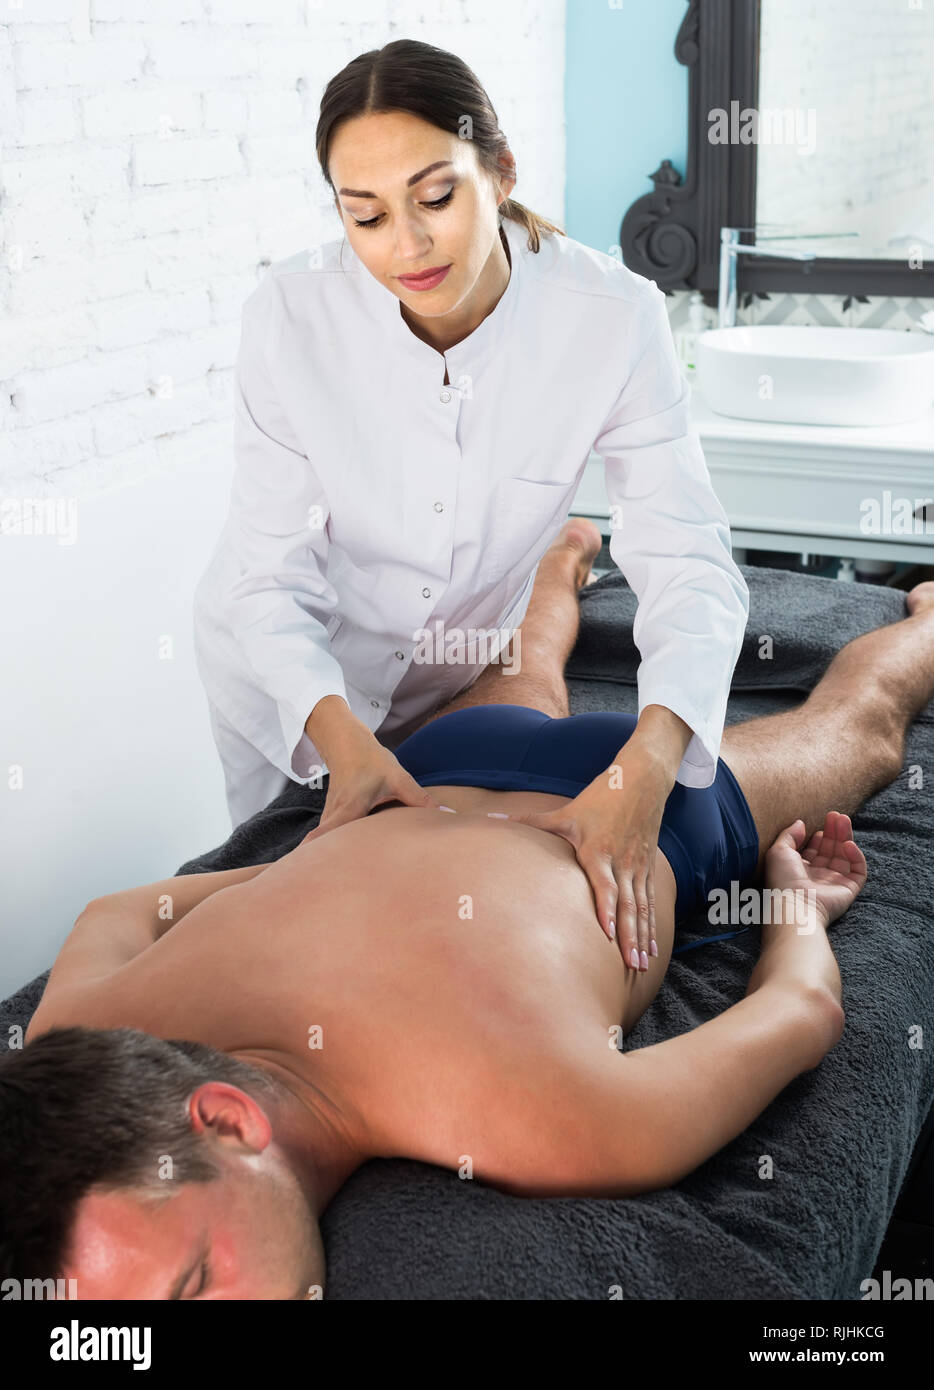 Professional masseuse performing back massage to positive american male client in spa center Stock Photo